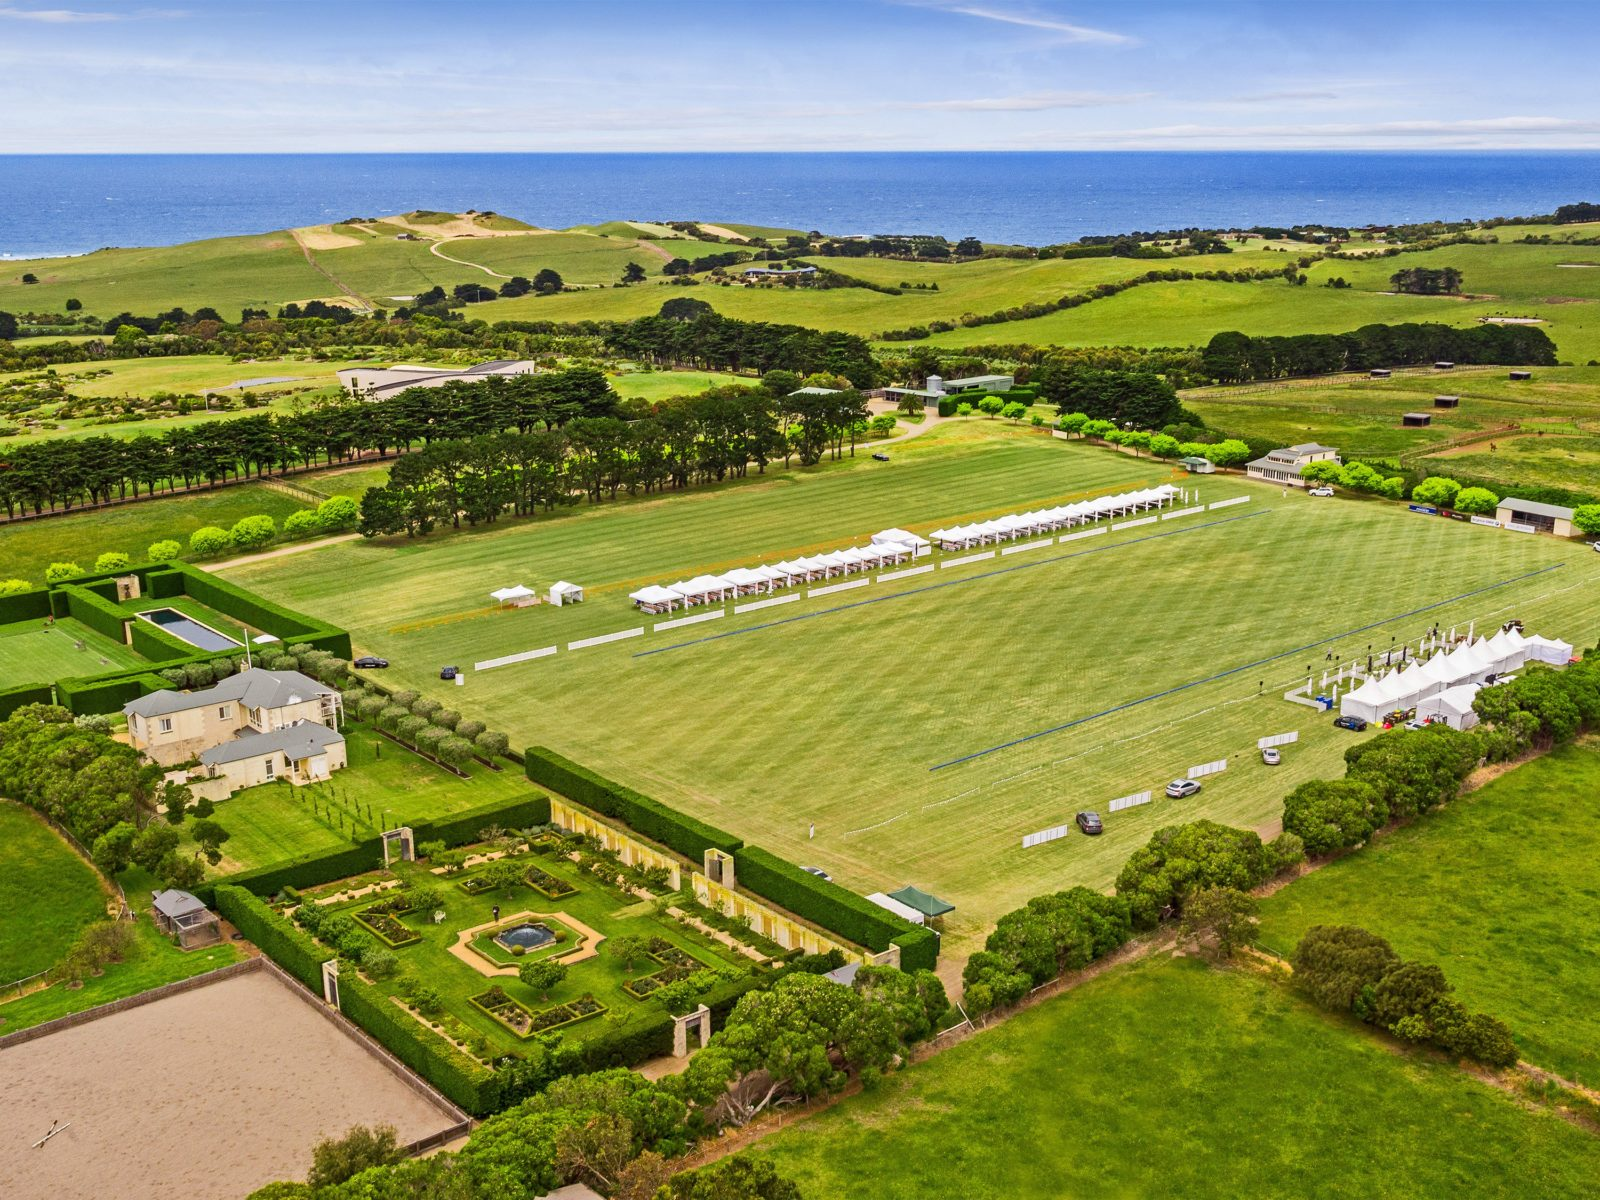 Bespoke, stunning and unique place to watch a game of Polo!